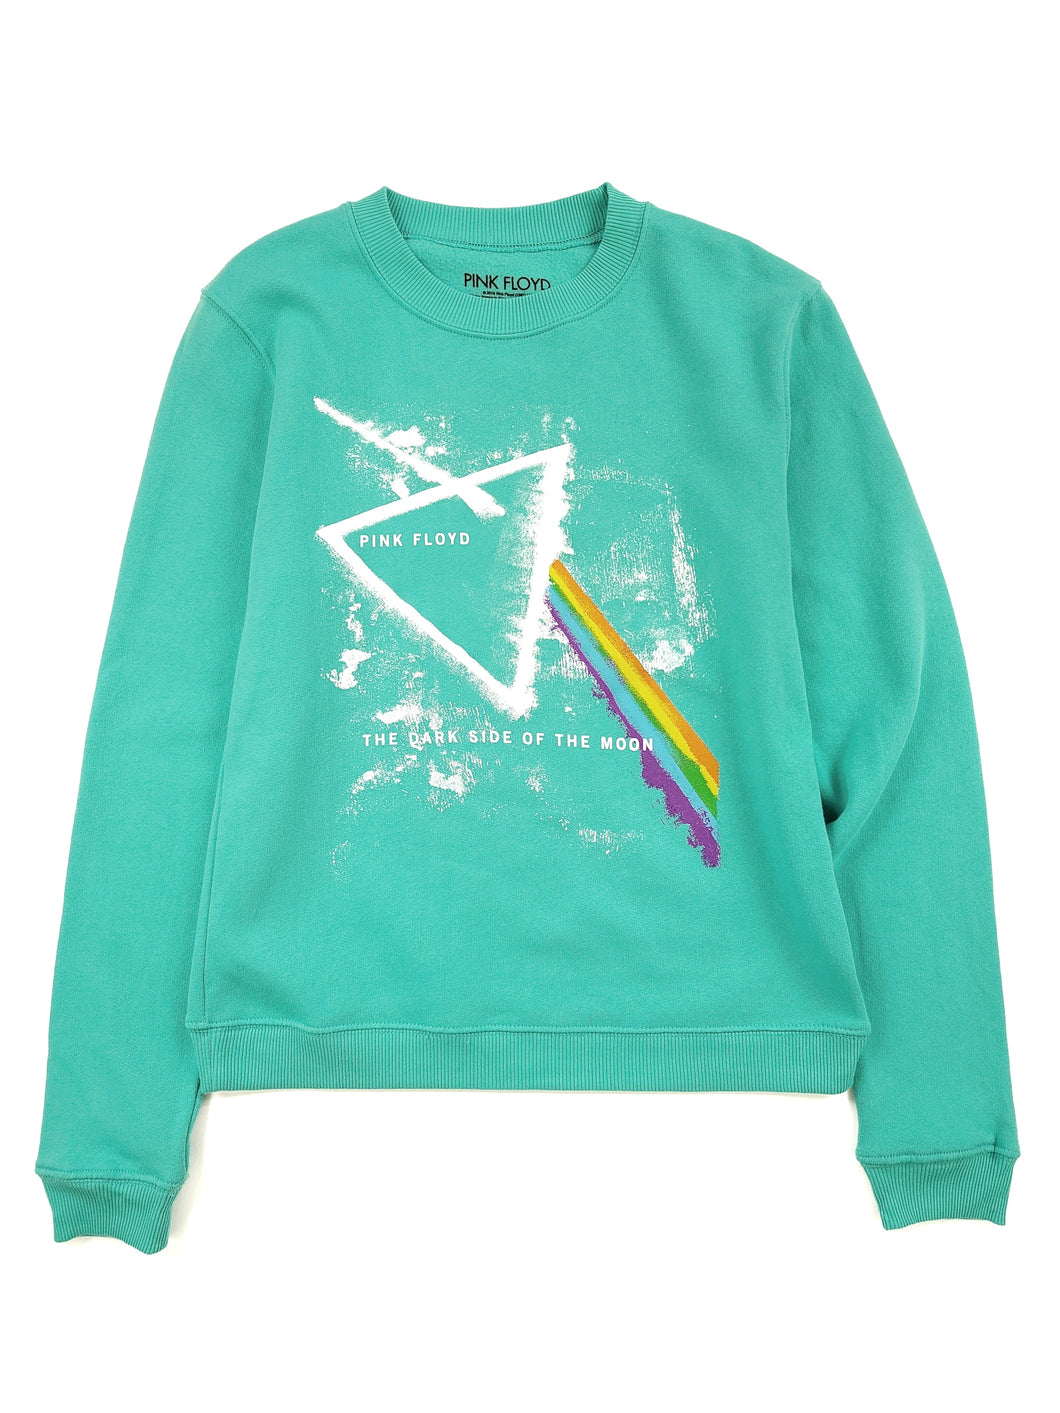 turquoise graphic Pink Floyd band sweatshirt